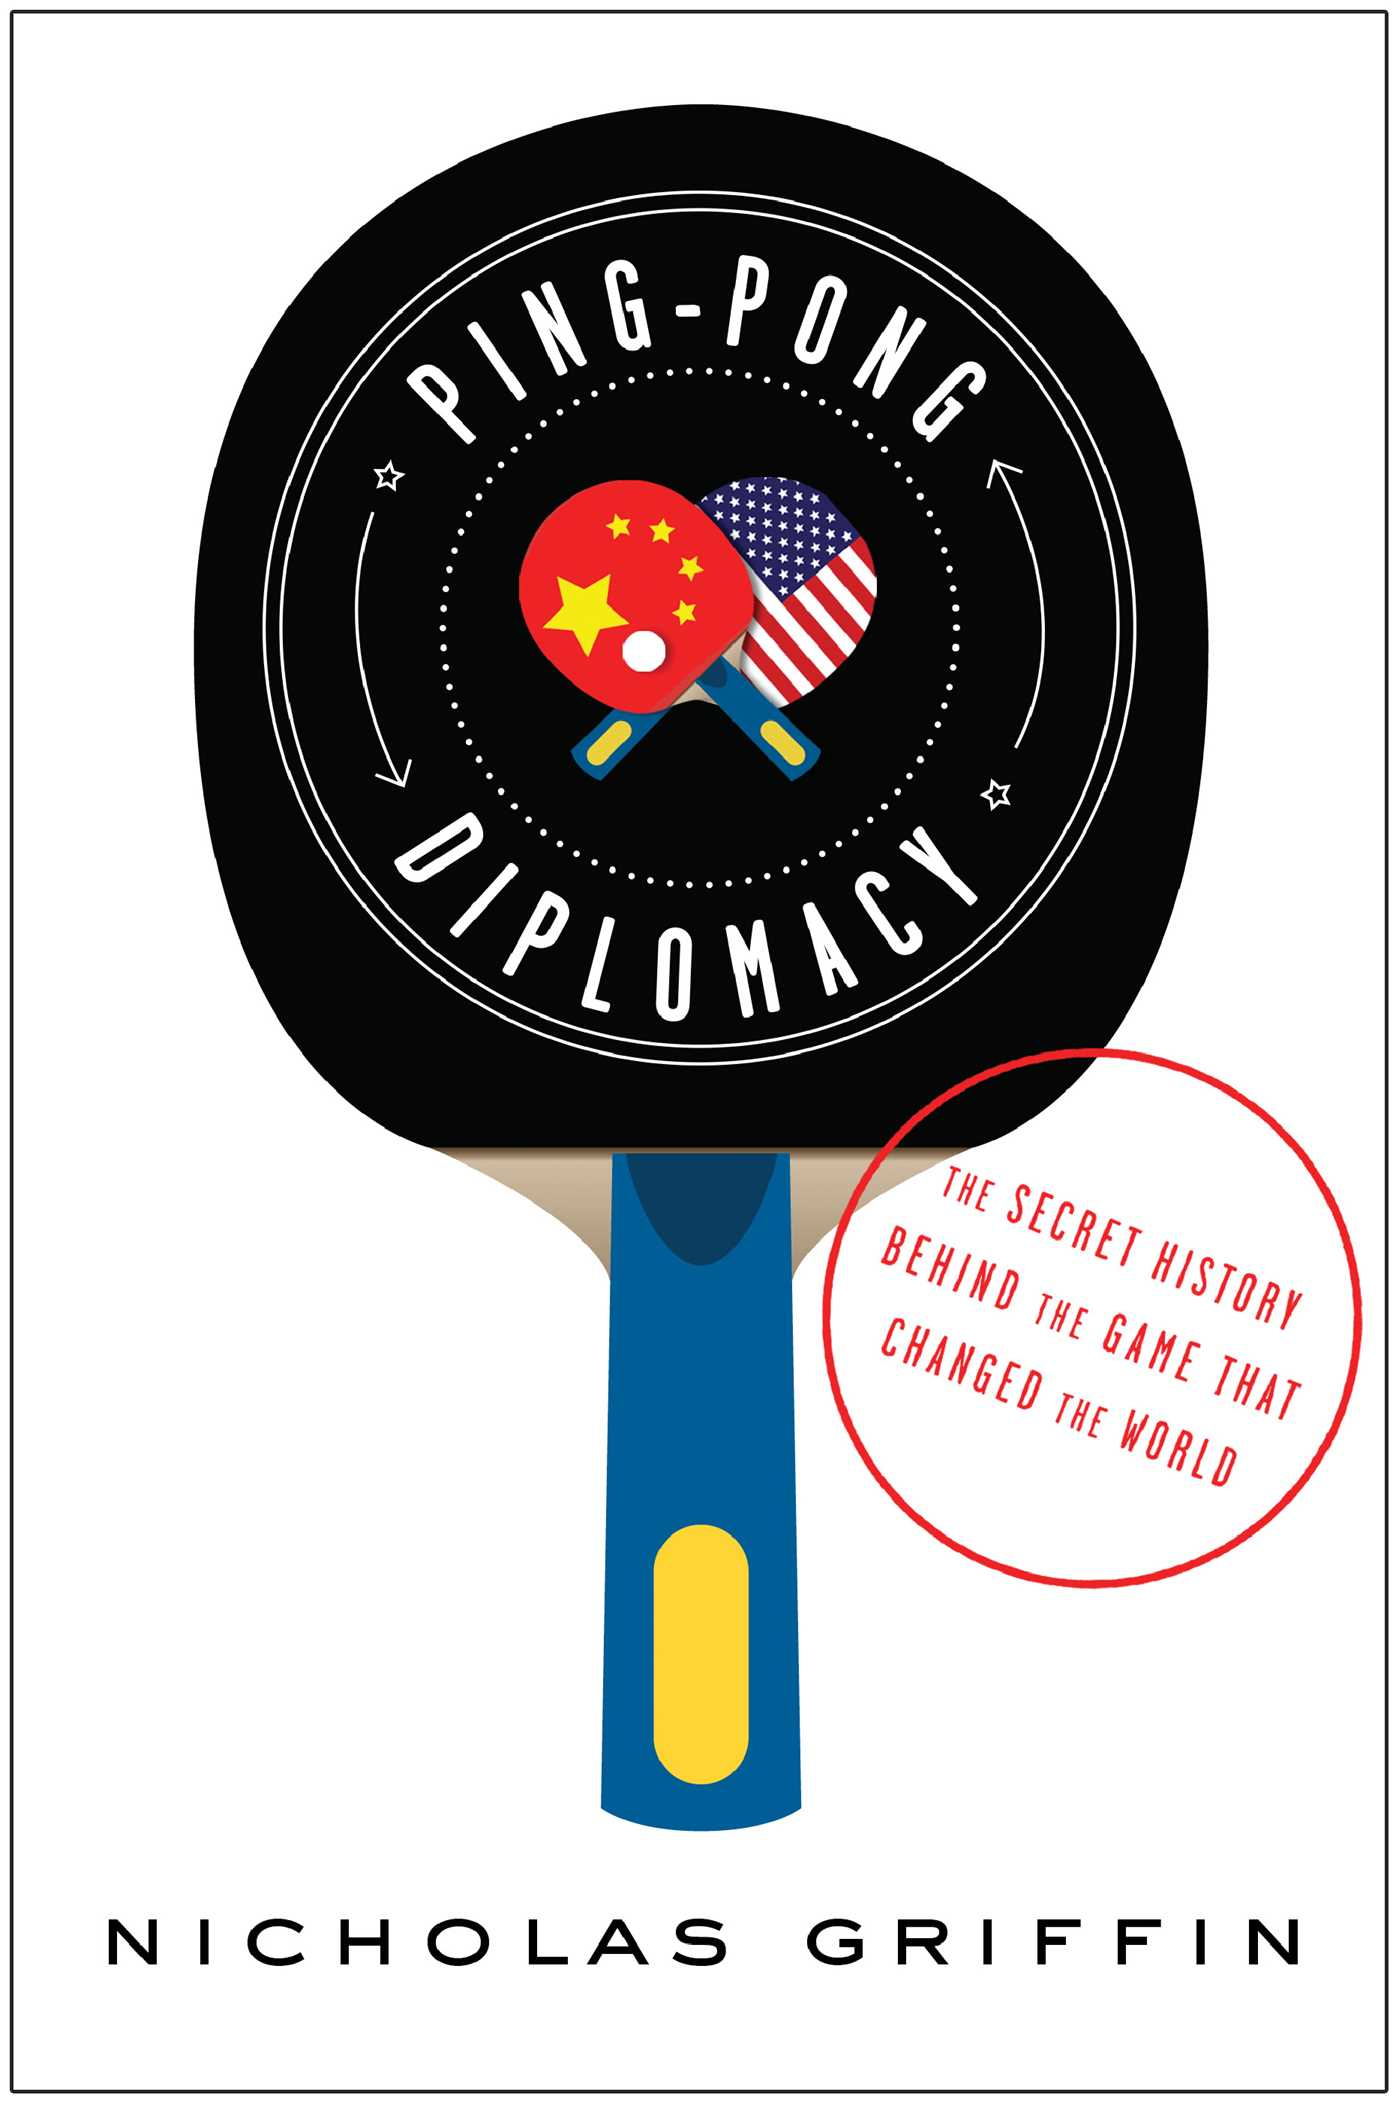 Ping pong diplomacy ebook by nicholas griffin official publisher the secret history behind the game that changed the world fandeluxe Epub